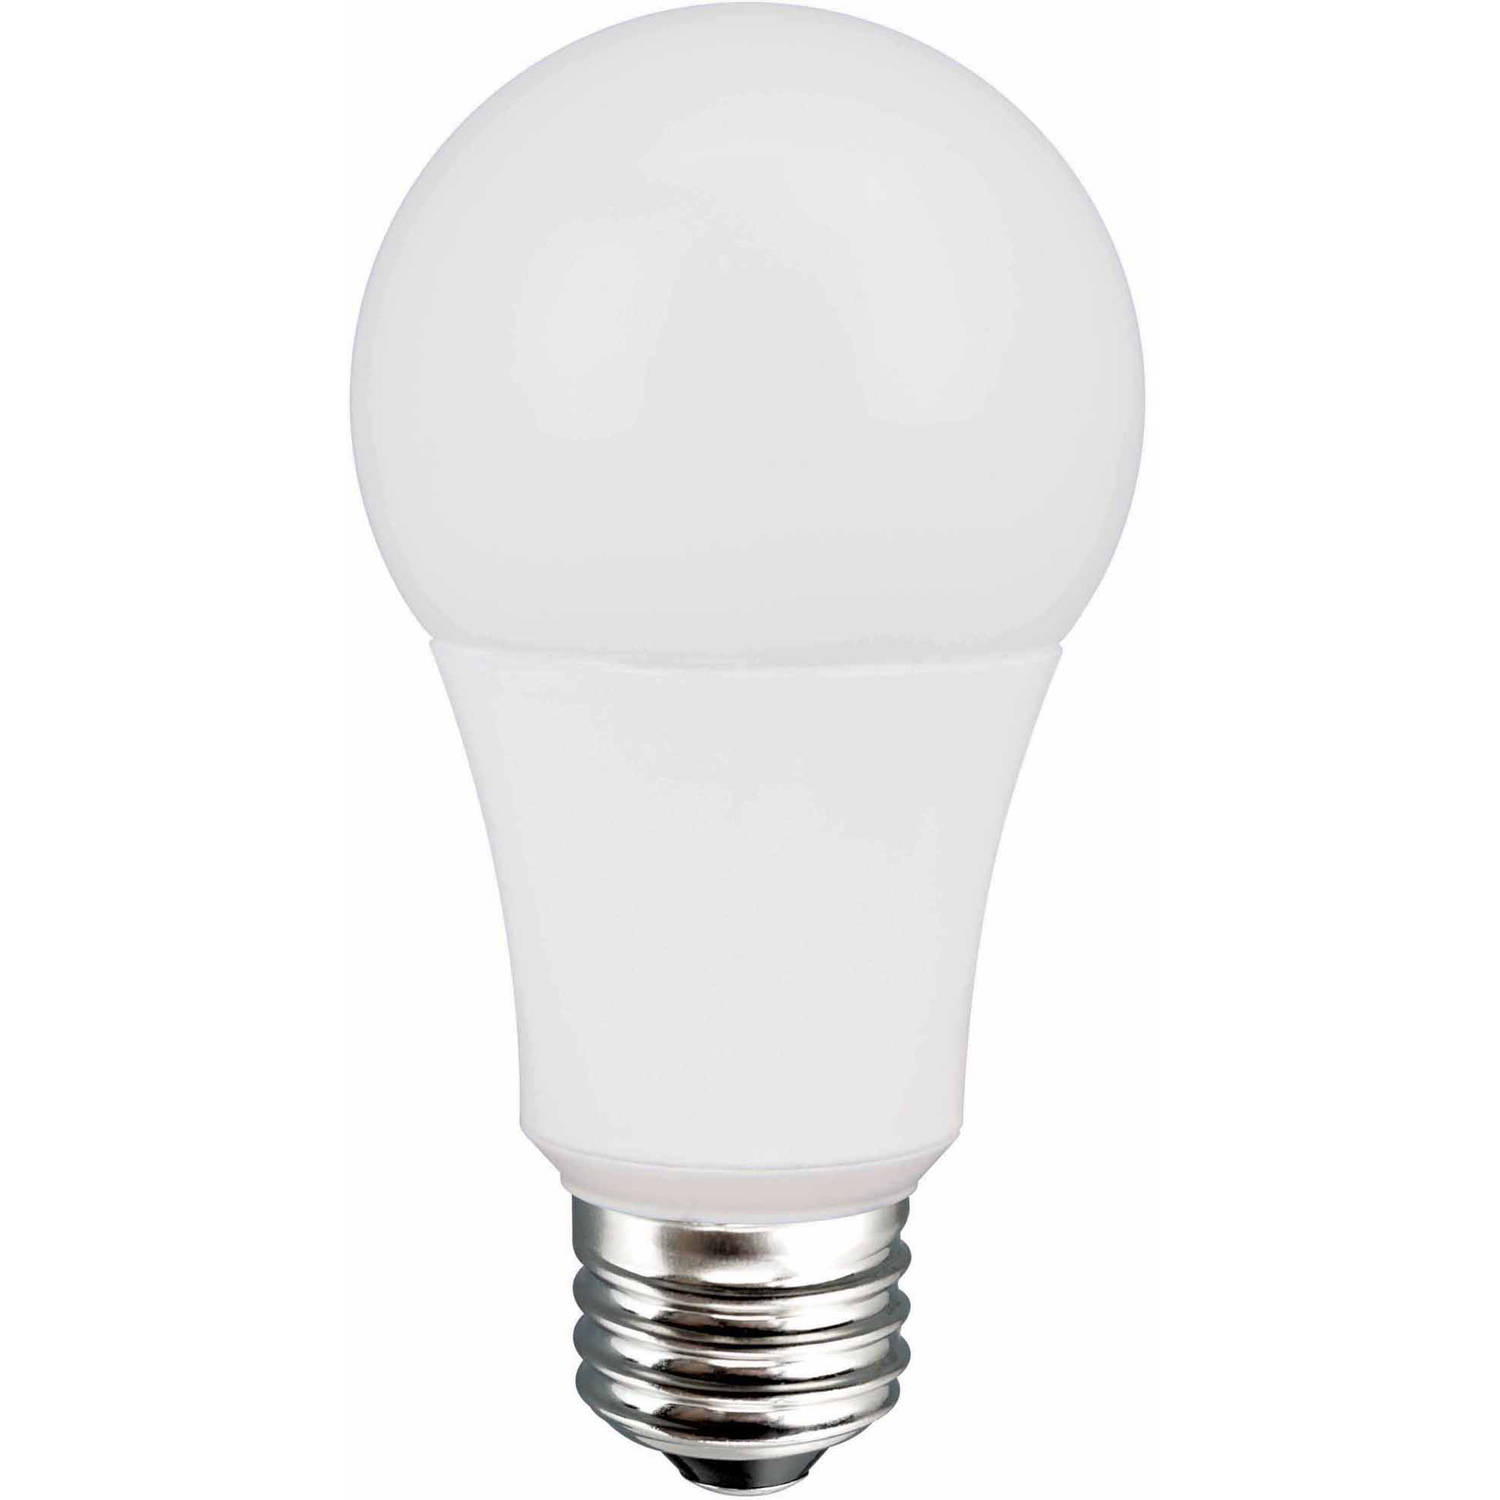 Led Light Bulb Images Galleries With A Bite